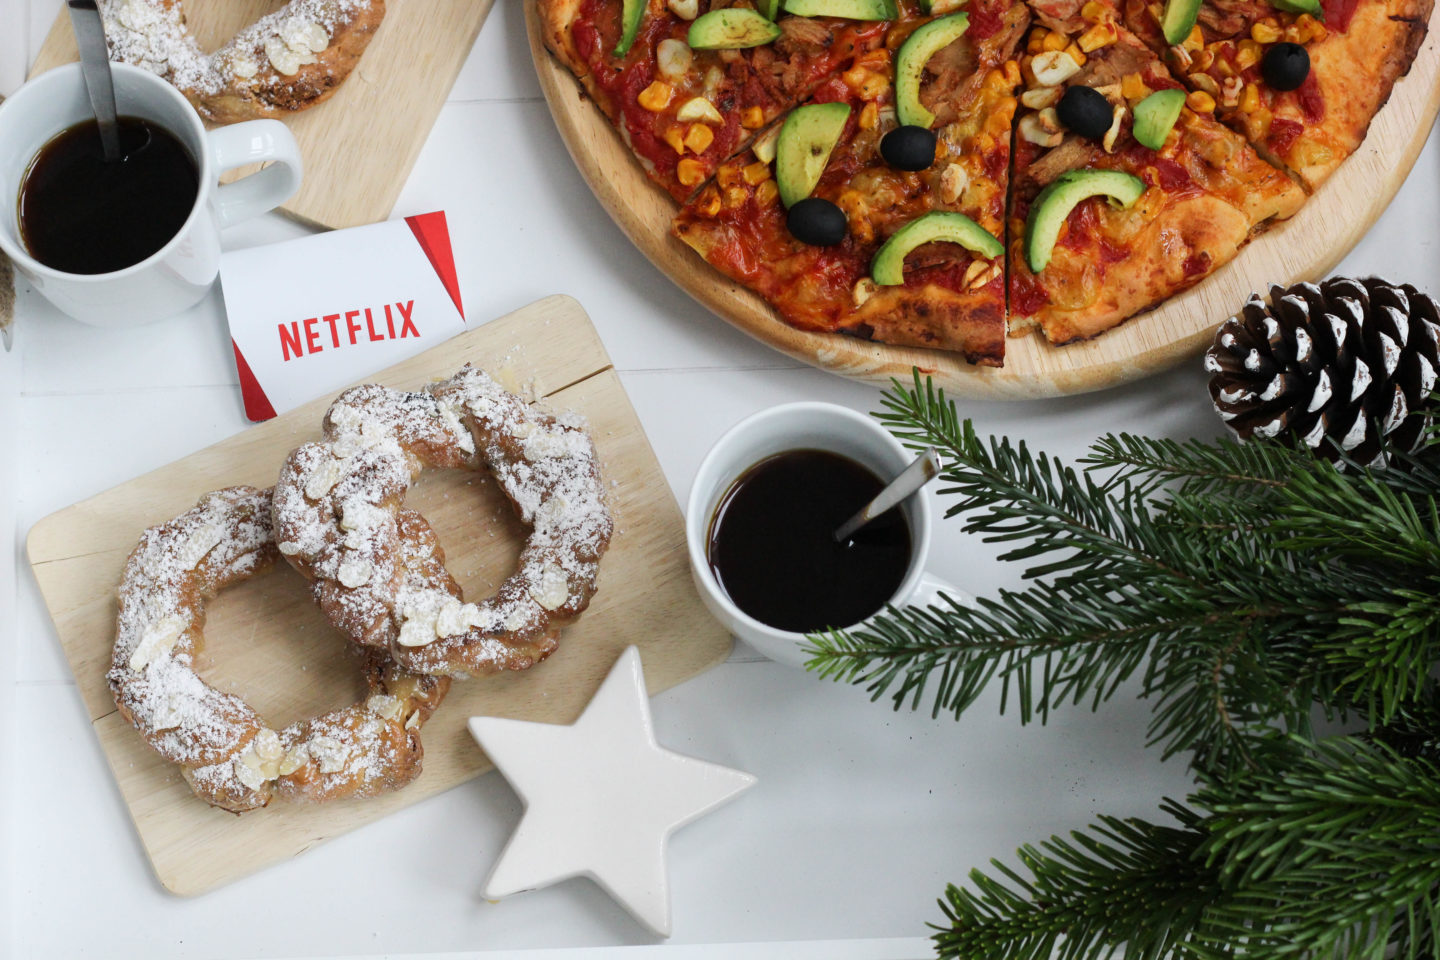 Vegane Gilmore Girls Pizza mit Fast Food Belag